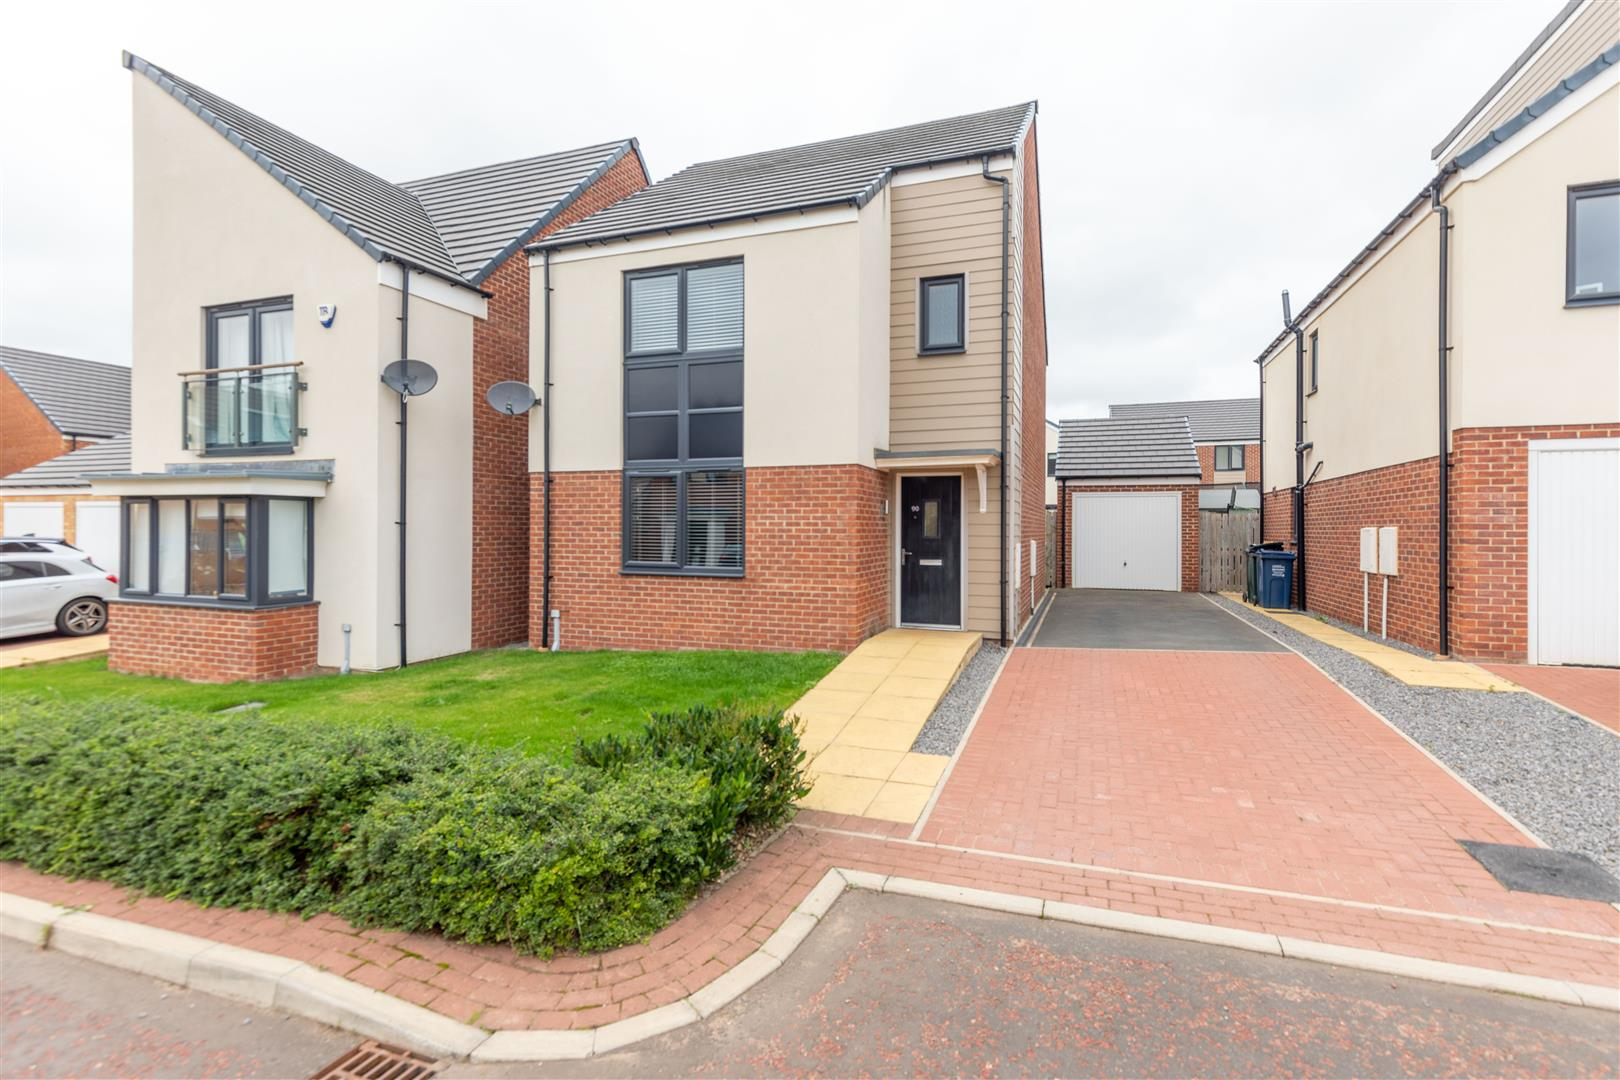 3 bed detached house to rent in Newcastle Upon Tyne, NE13 9DN - Property Image 1